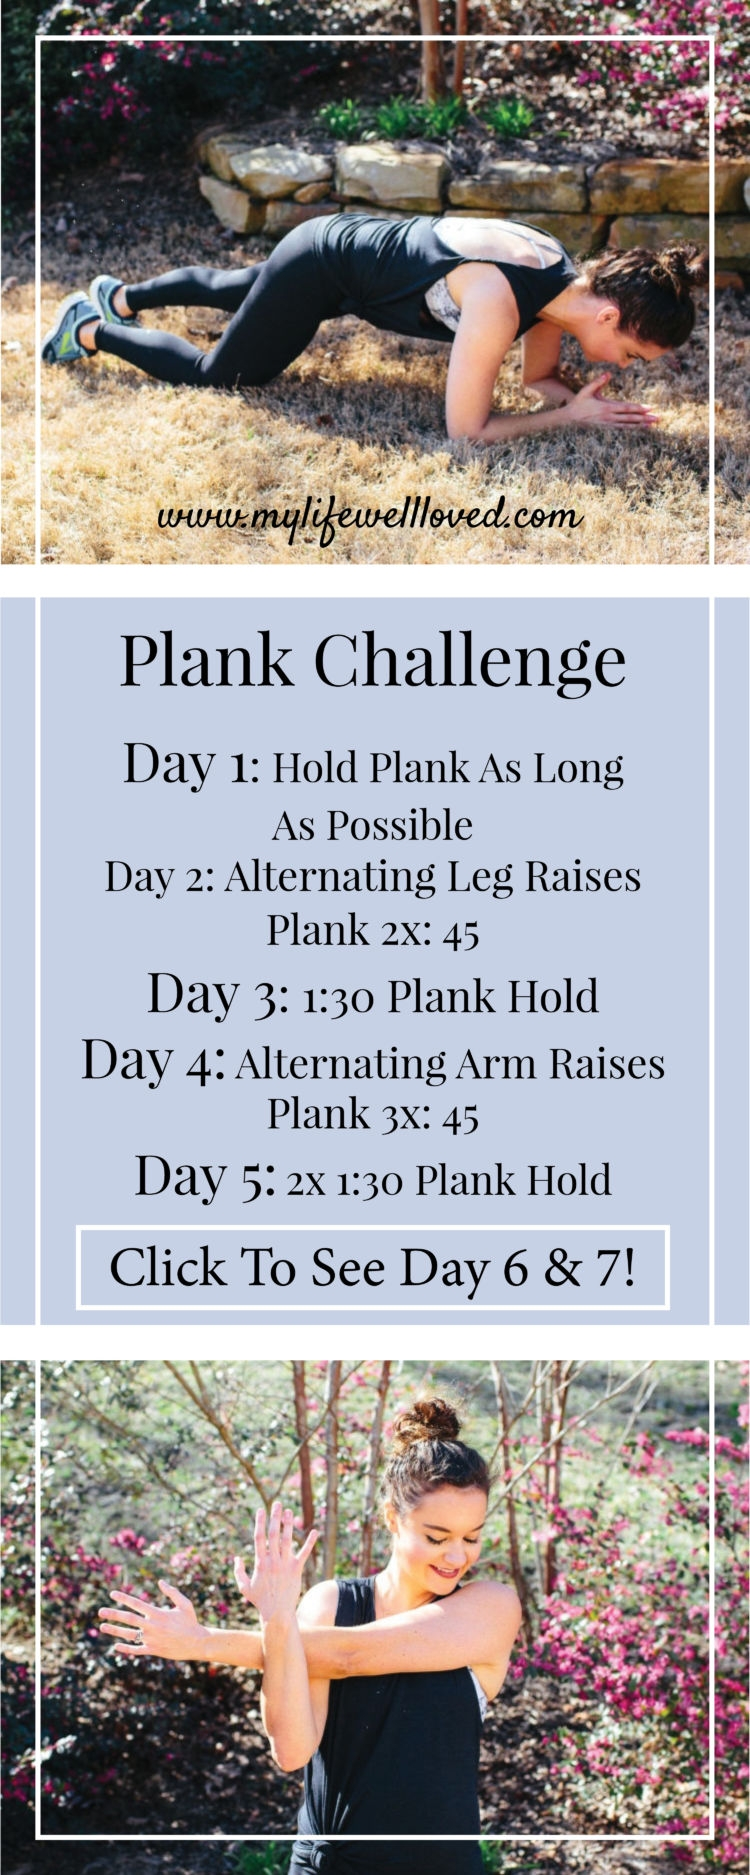 Plank Challenge with Birmingham Healthy Life + Style Blogger, Heather Brown #plankchallenge #fitmom #workout